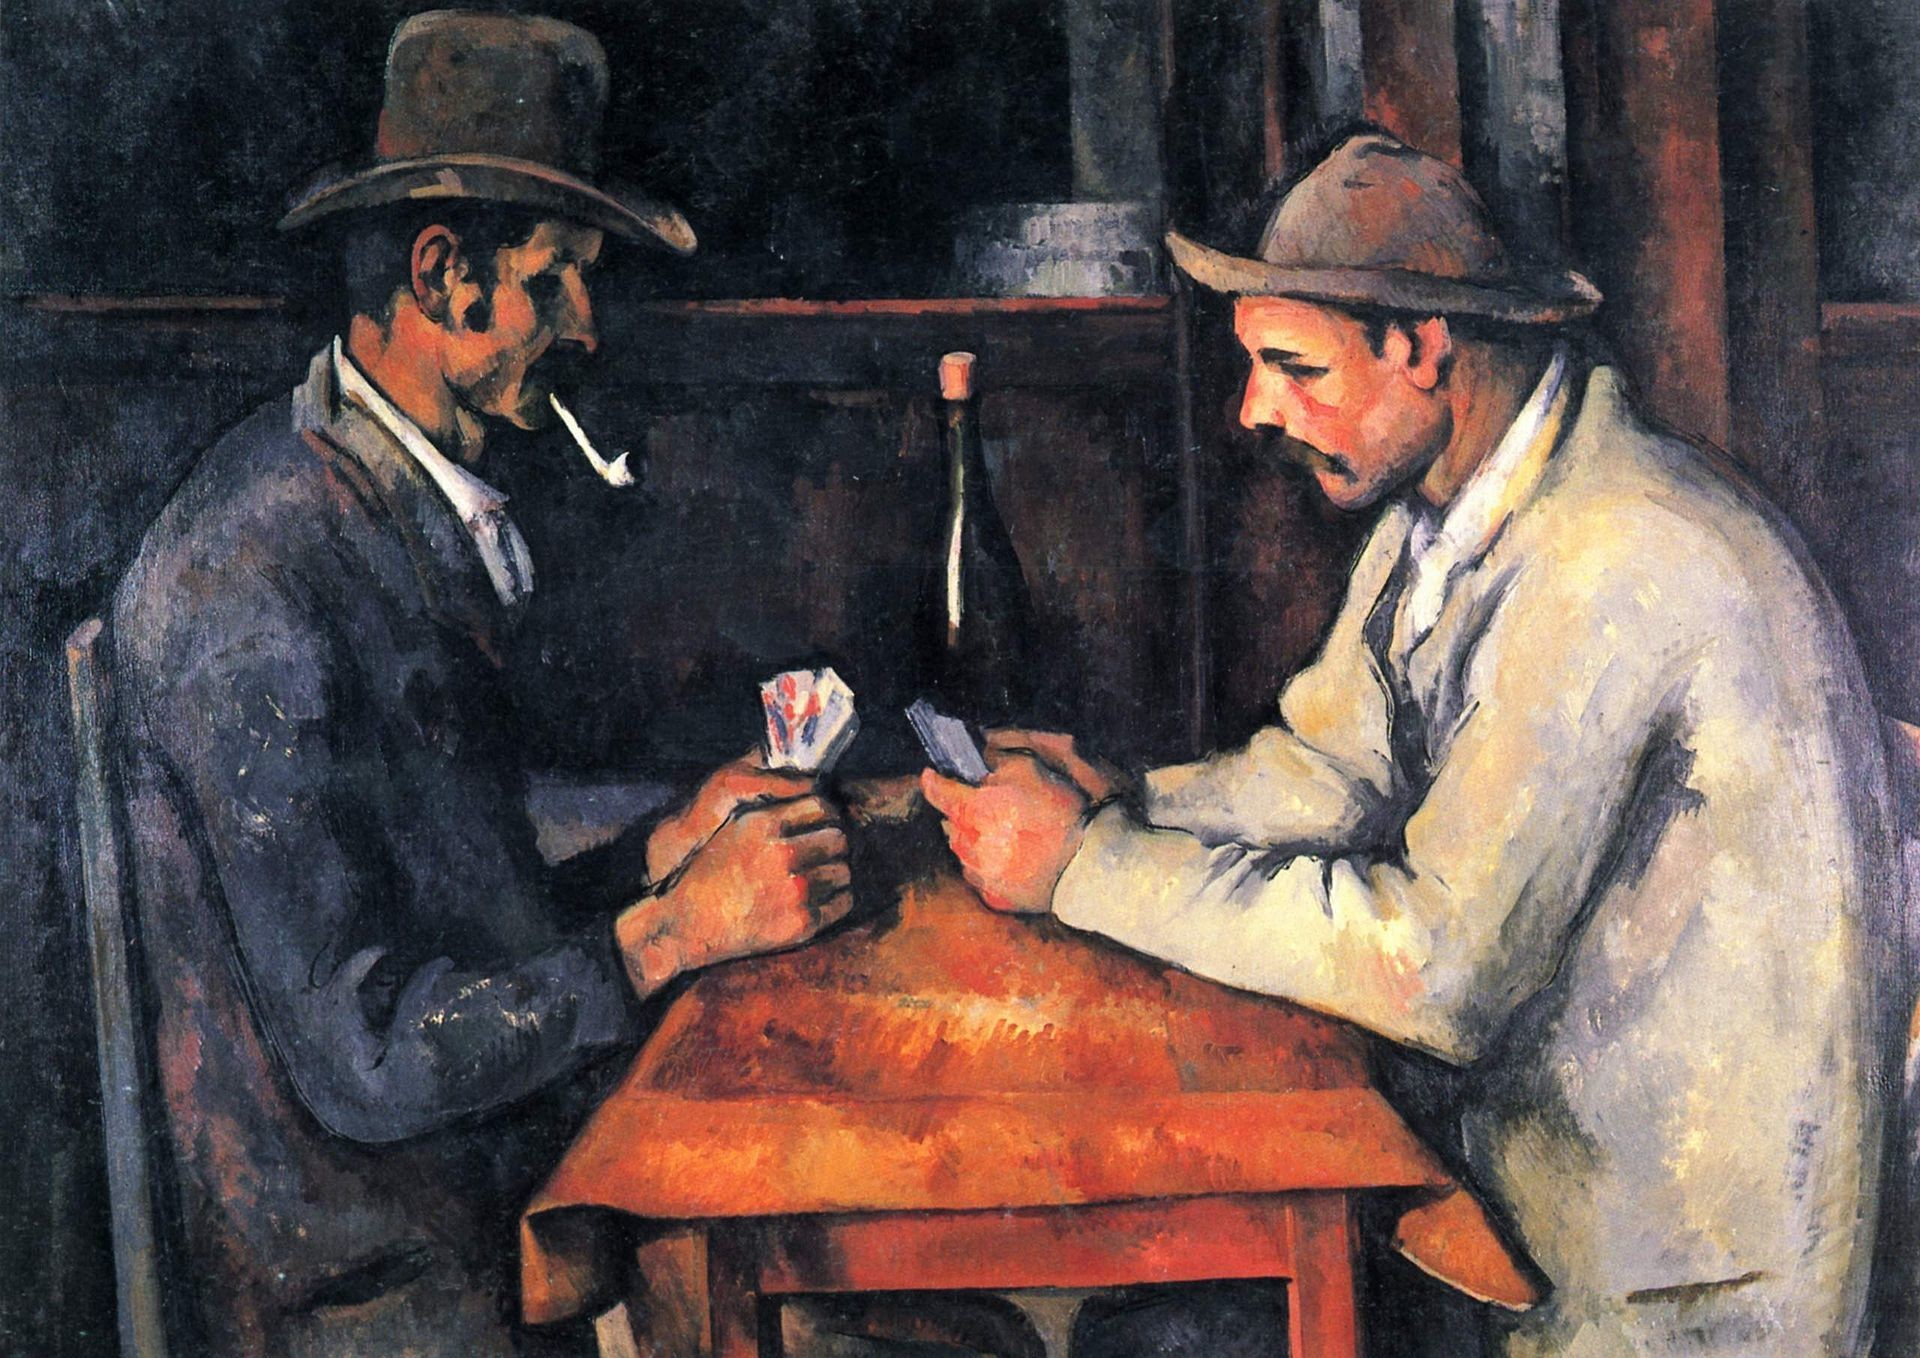 The Card Players series was painted in Cézanne's final period in the early 1890s